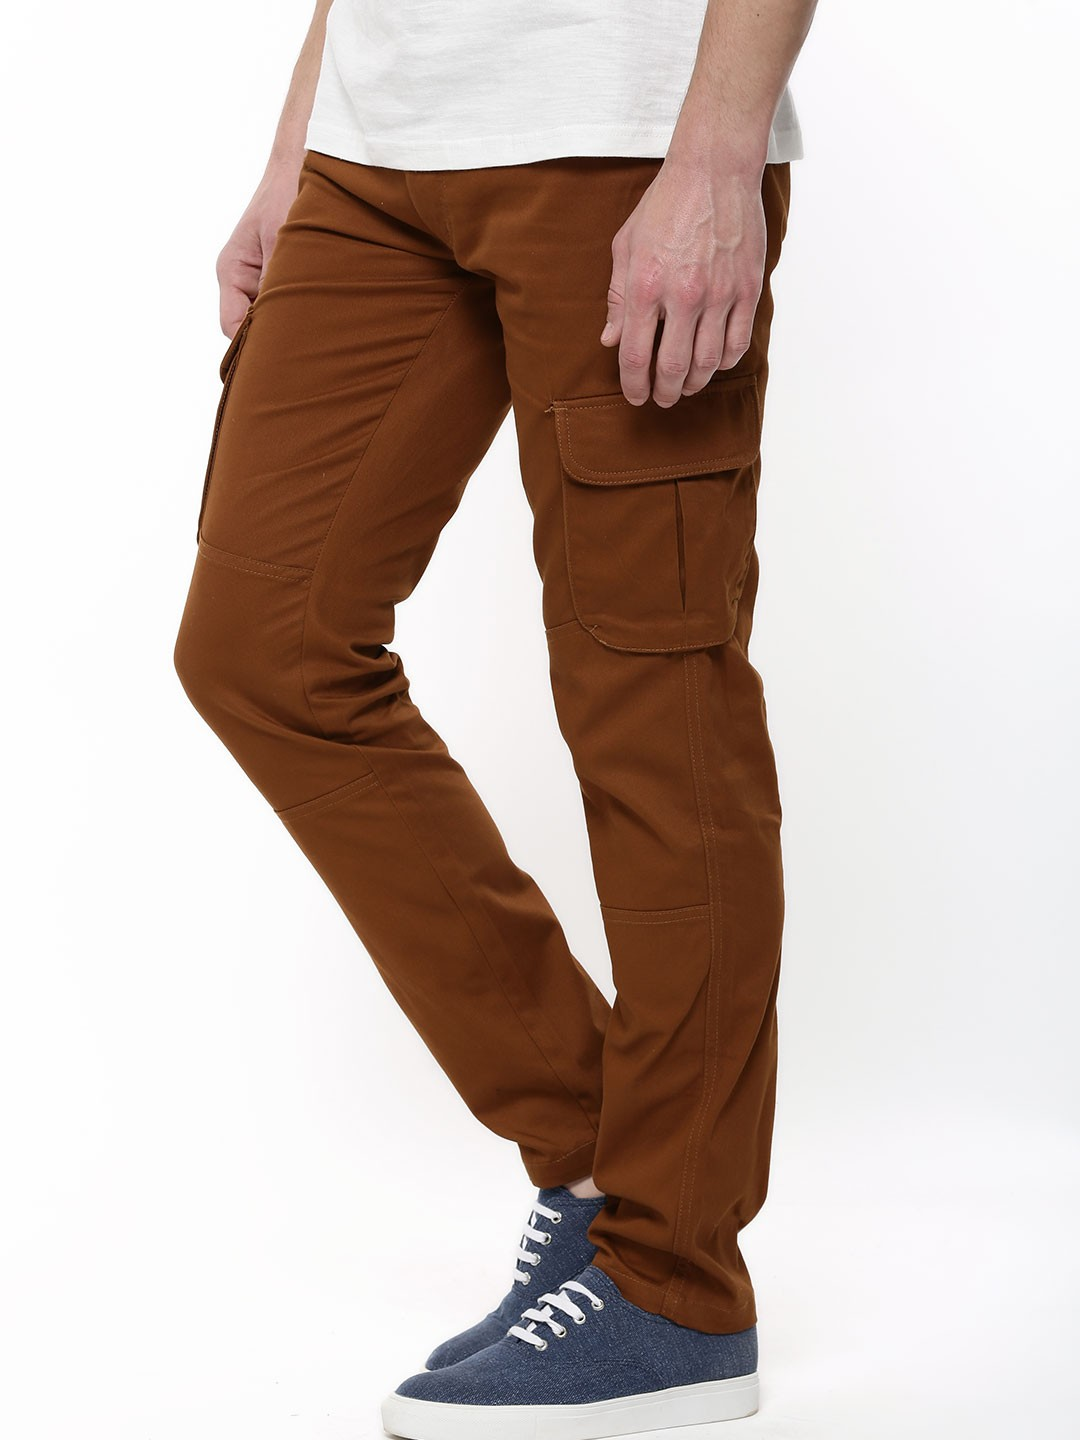 Find the newest men's trousers from Urban Outfitters. Shop Dickies' work trousers, Shore Leave's skate pants and skinny chinos, Levi's Slim Fit and more.